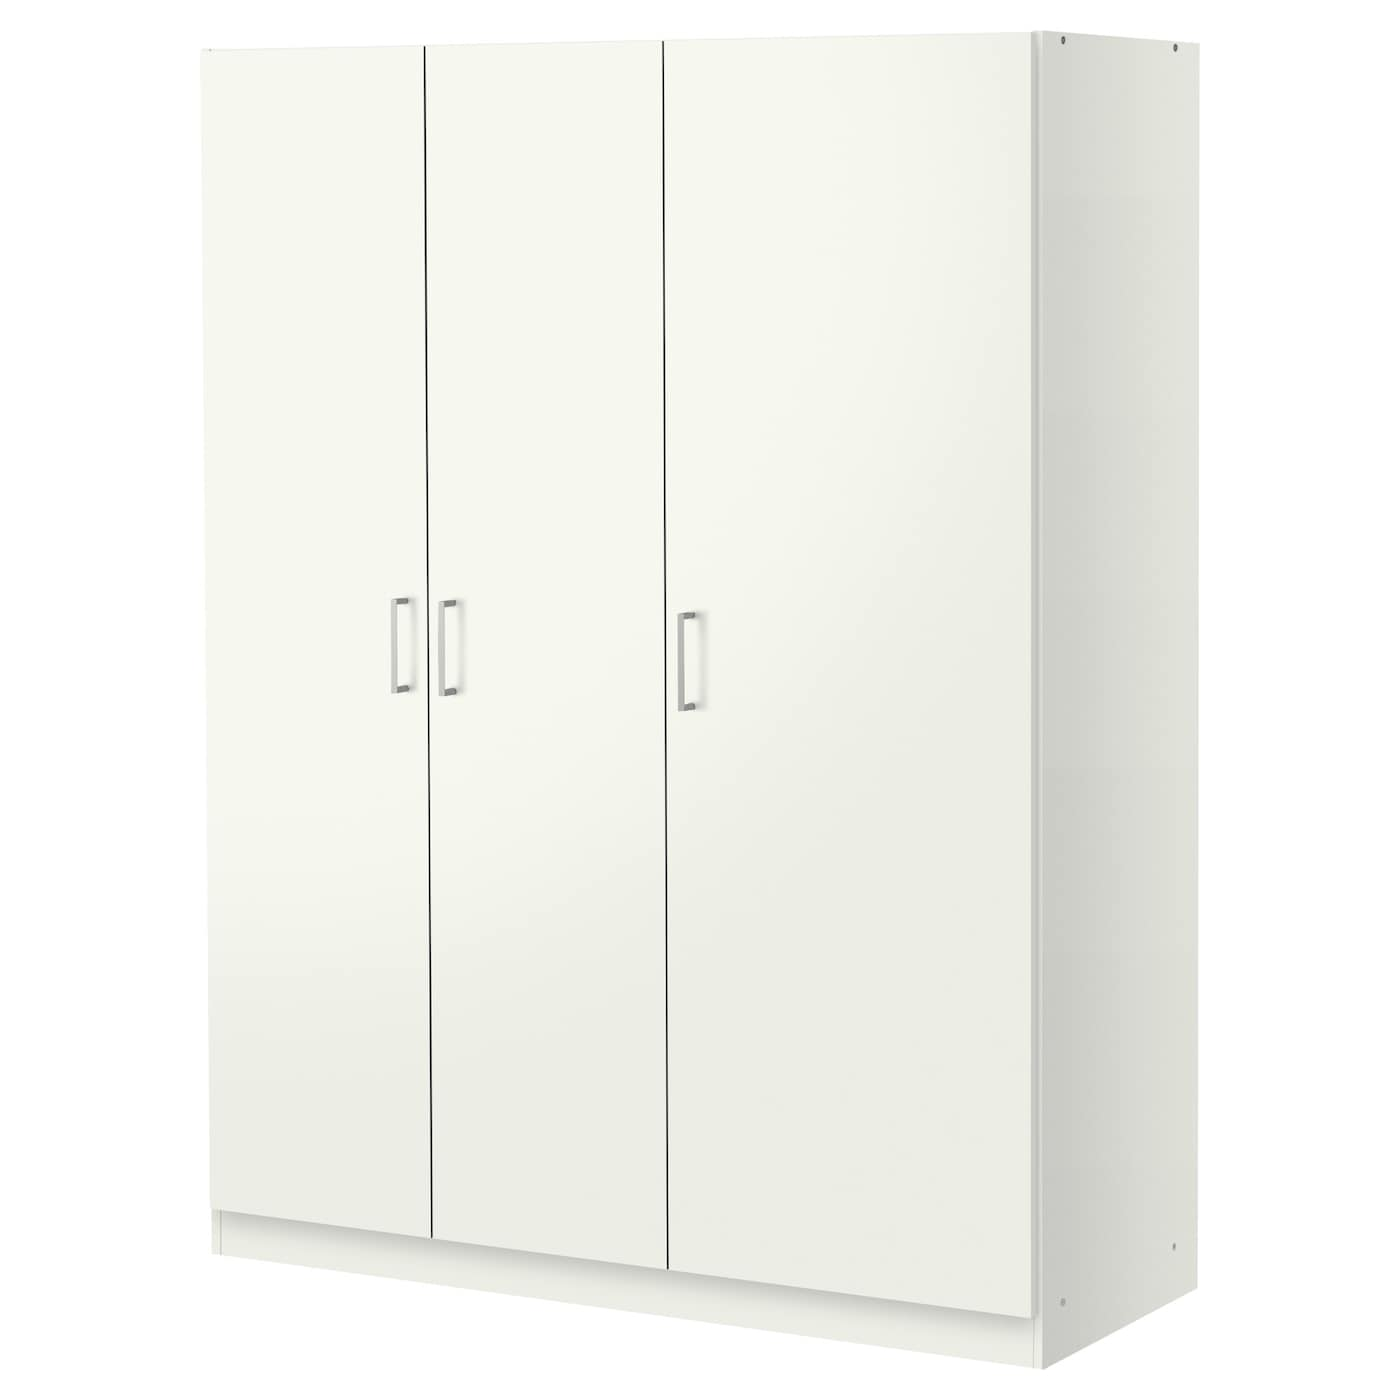 Ikea Ivar Regal Zusammenbauen ~ IKEA DOMBÅS wardrobe Adjustable shelves make it easy to customise the